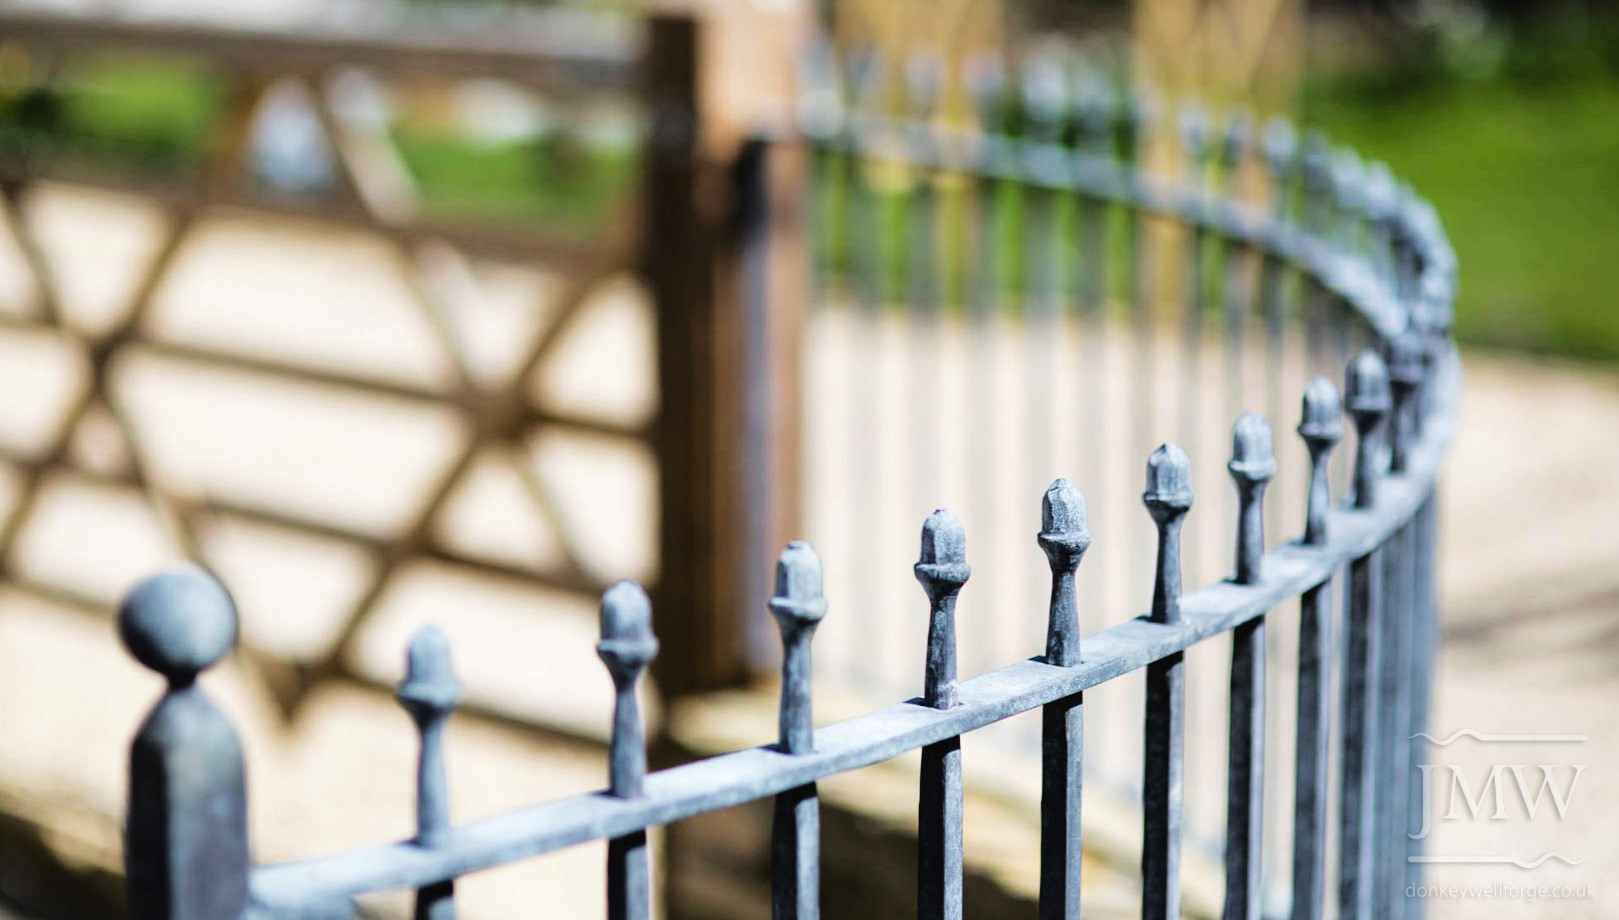 acorn-railings-ironwork-country-house-detail-donkeywell-forge